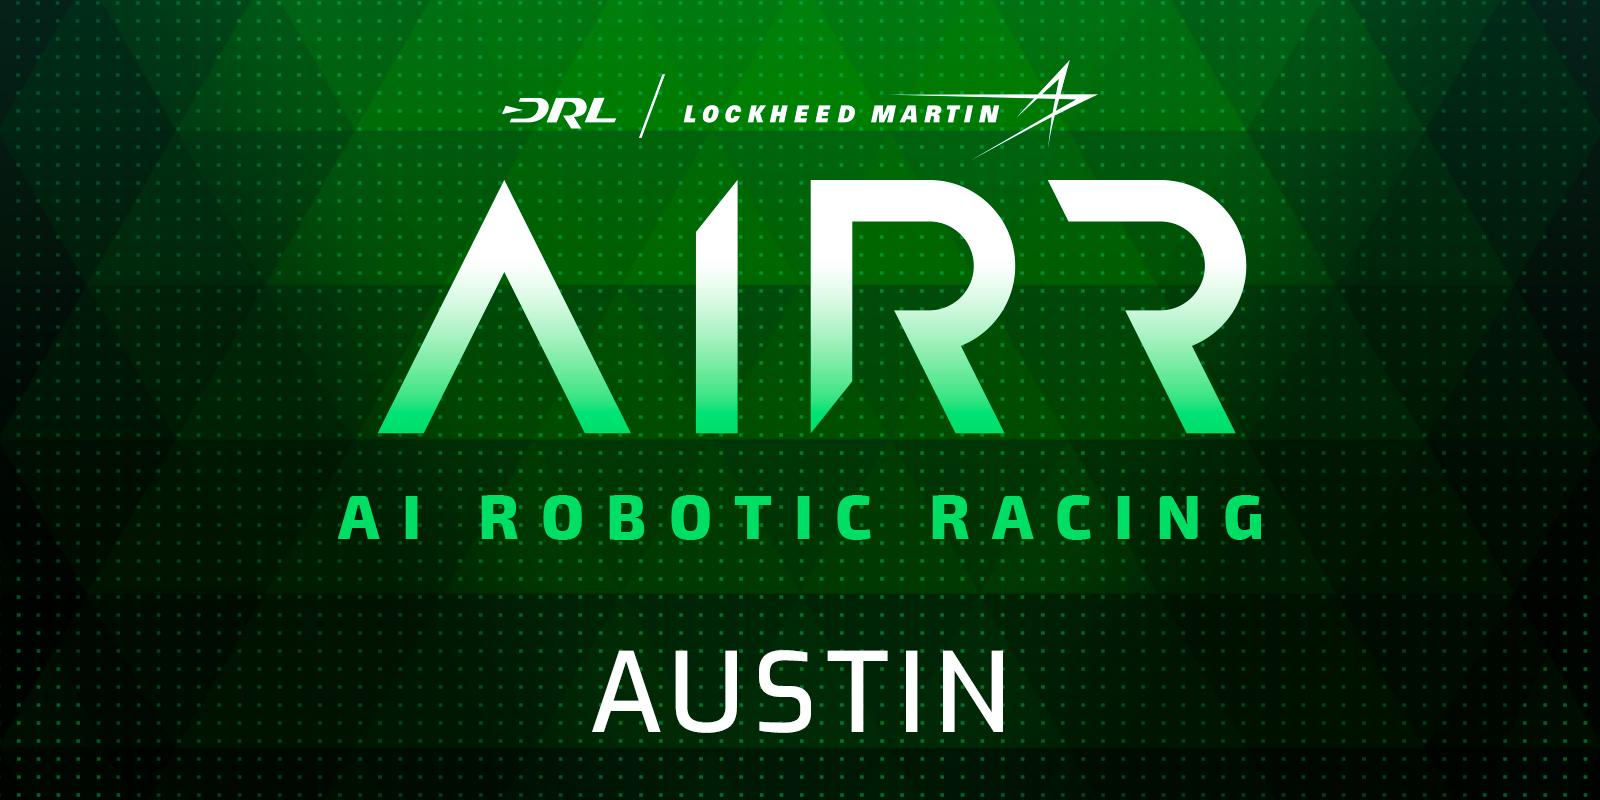 Drone Racing League: Artificial Intelligence Robotic Racing (AIRR) World Championship